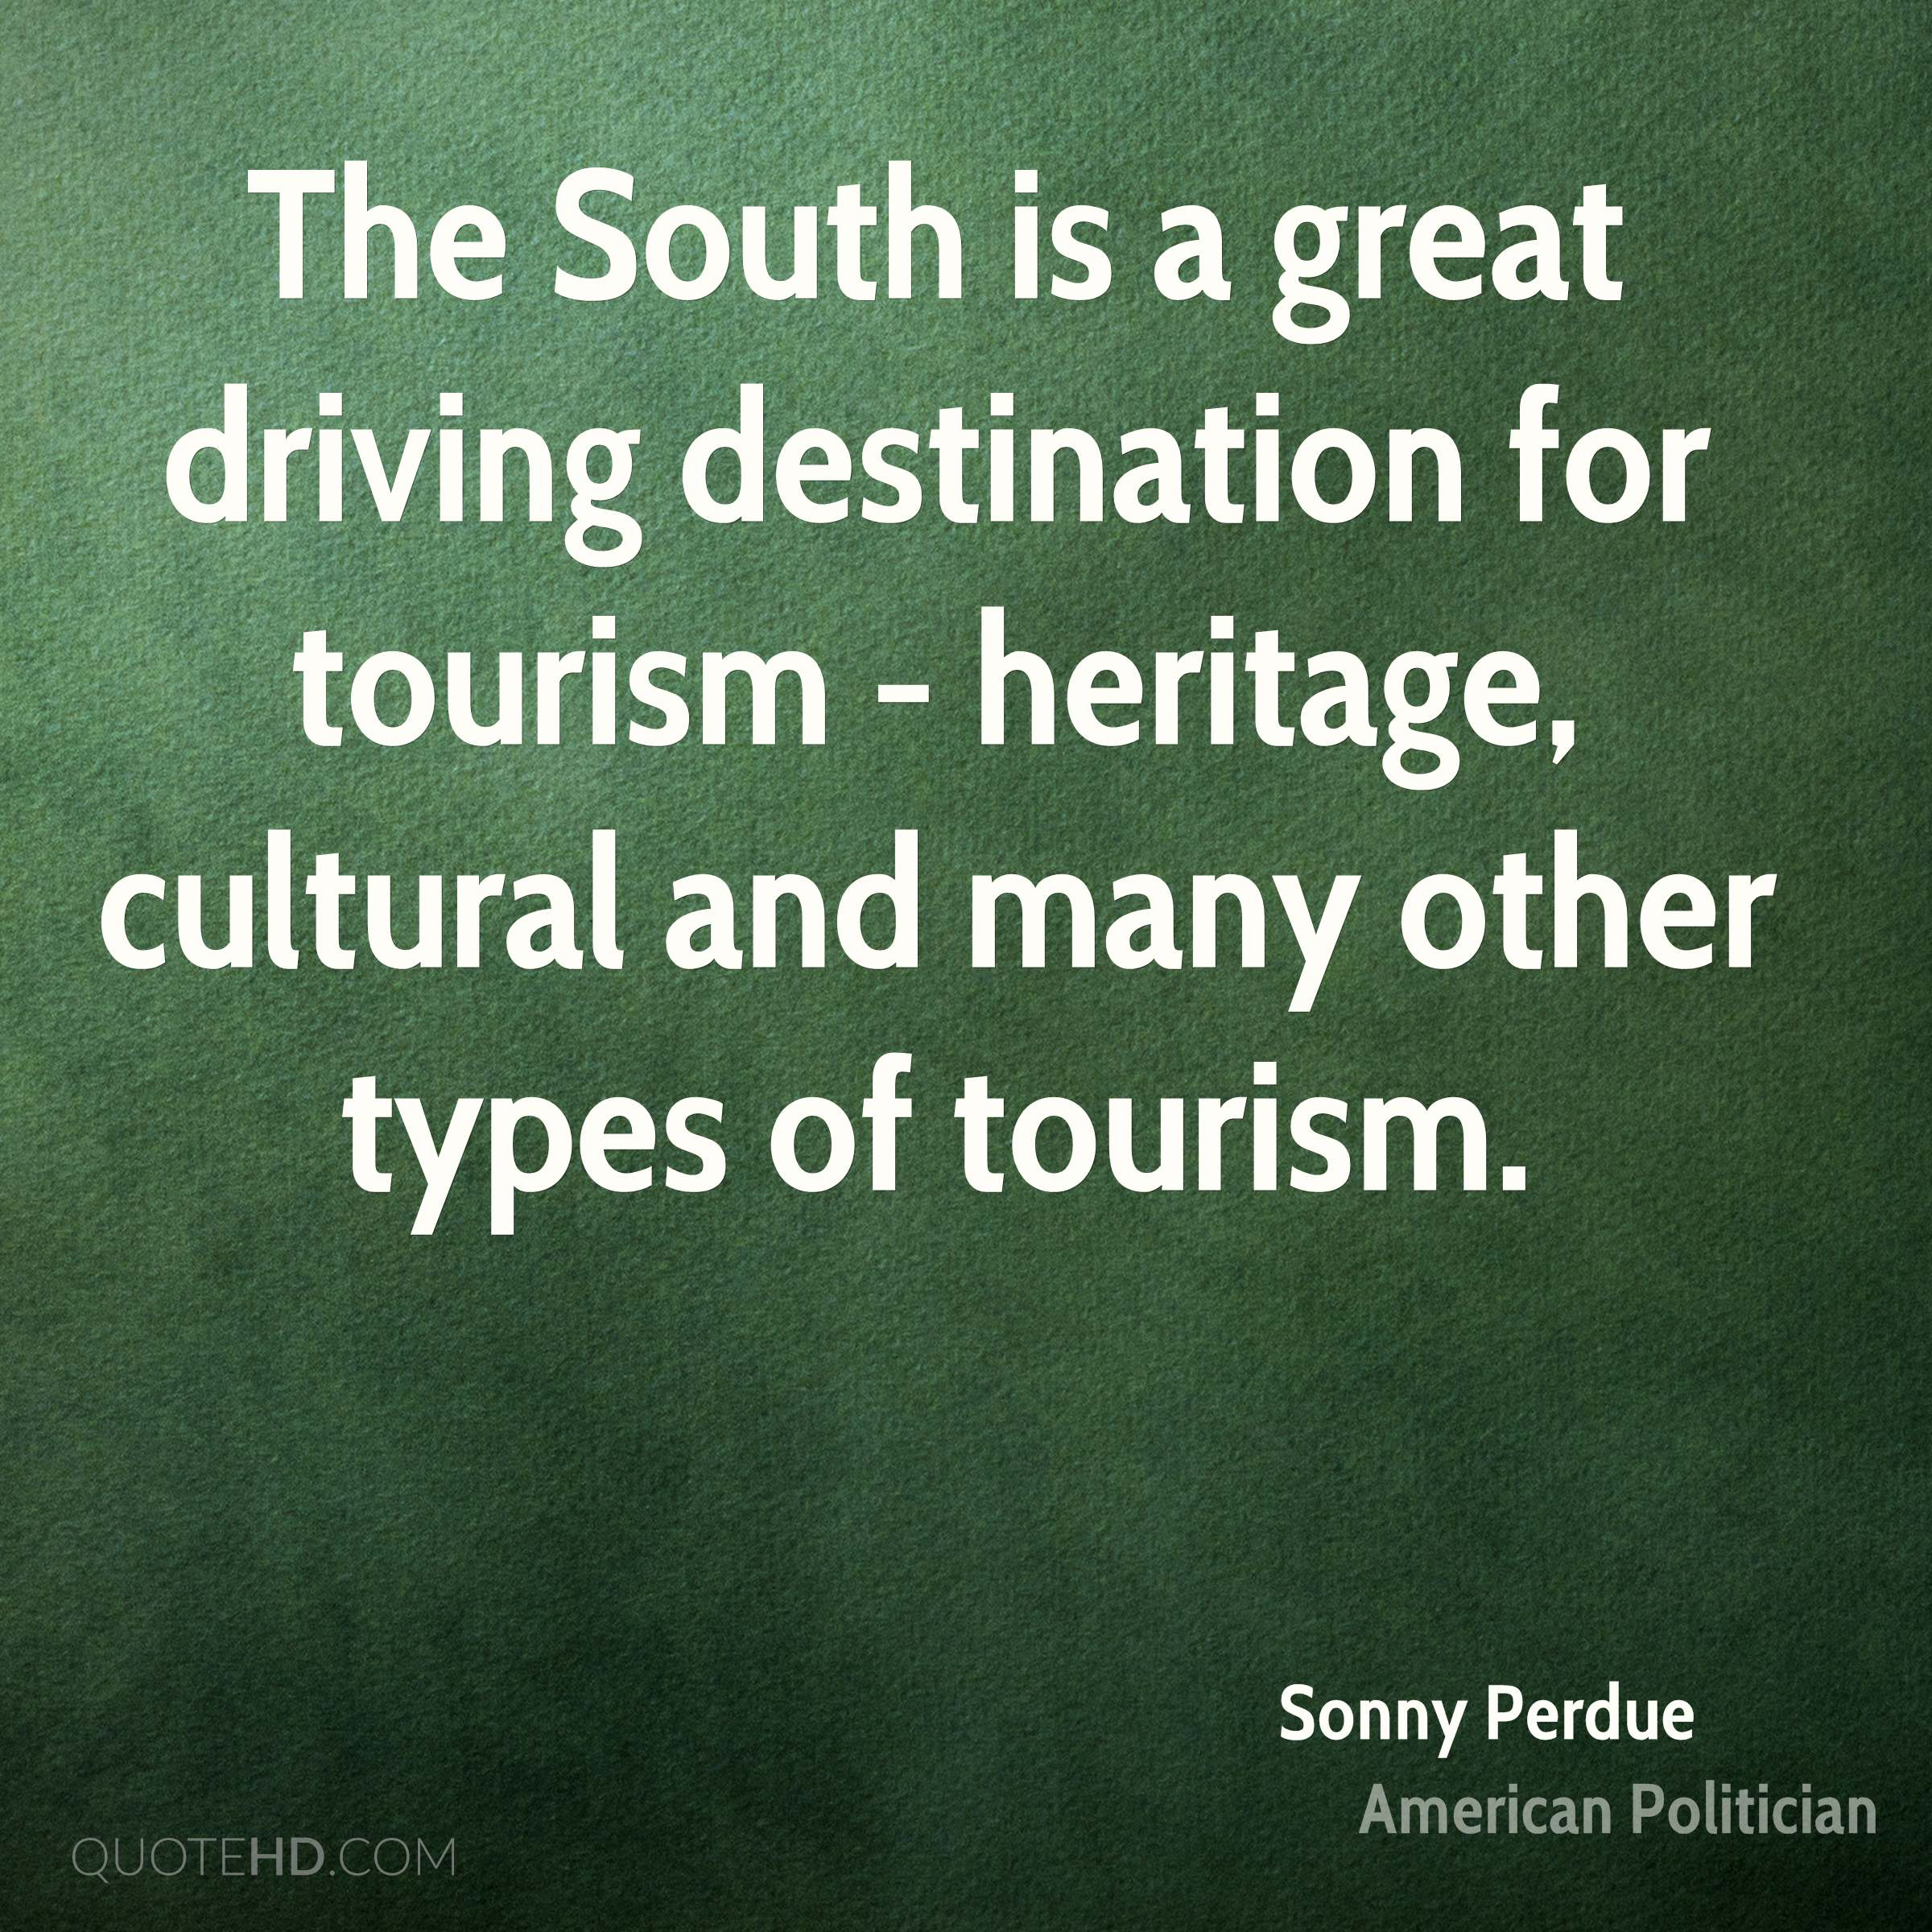 The South is a great driving destination for tourism - heritage, cultural and many other types of tourism.